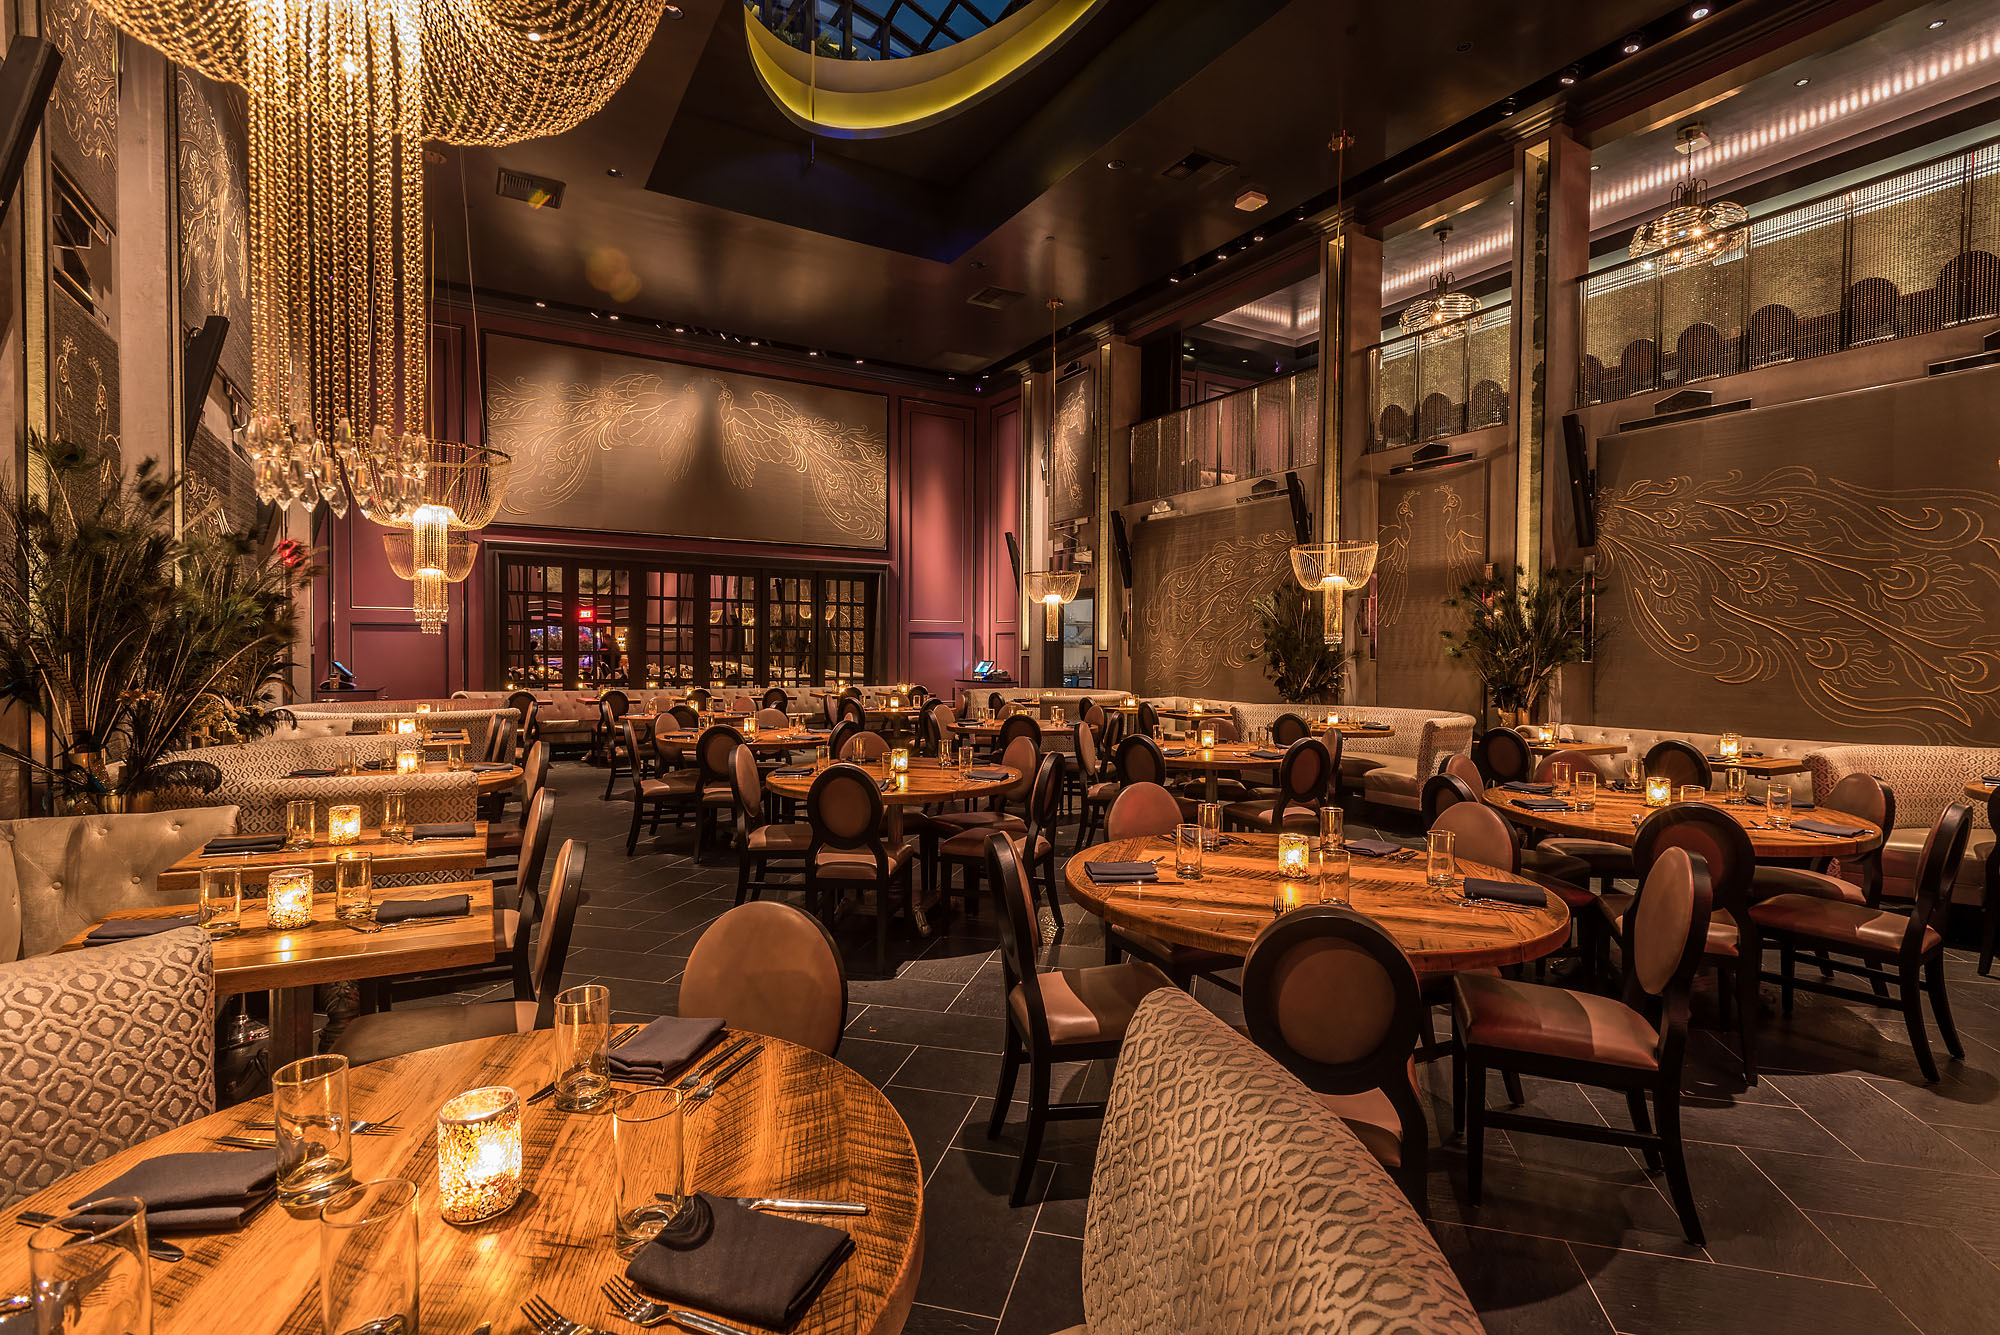 Inside Beauty Essex Hollywoods Glitzy New Dining Palace